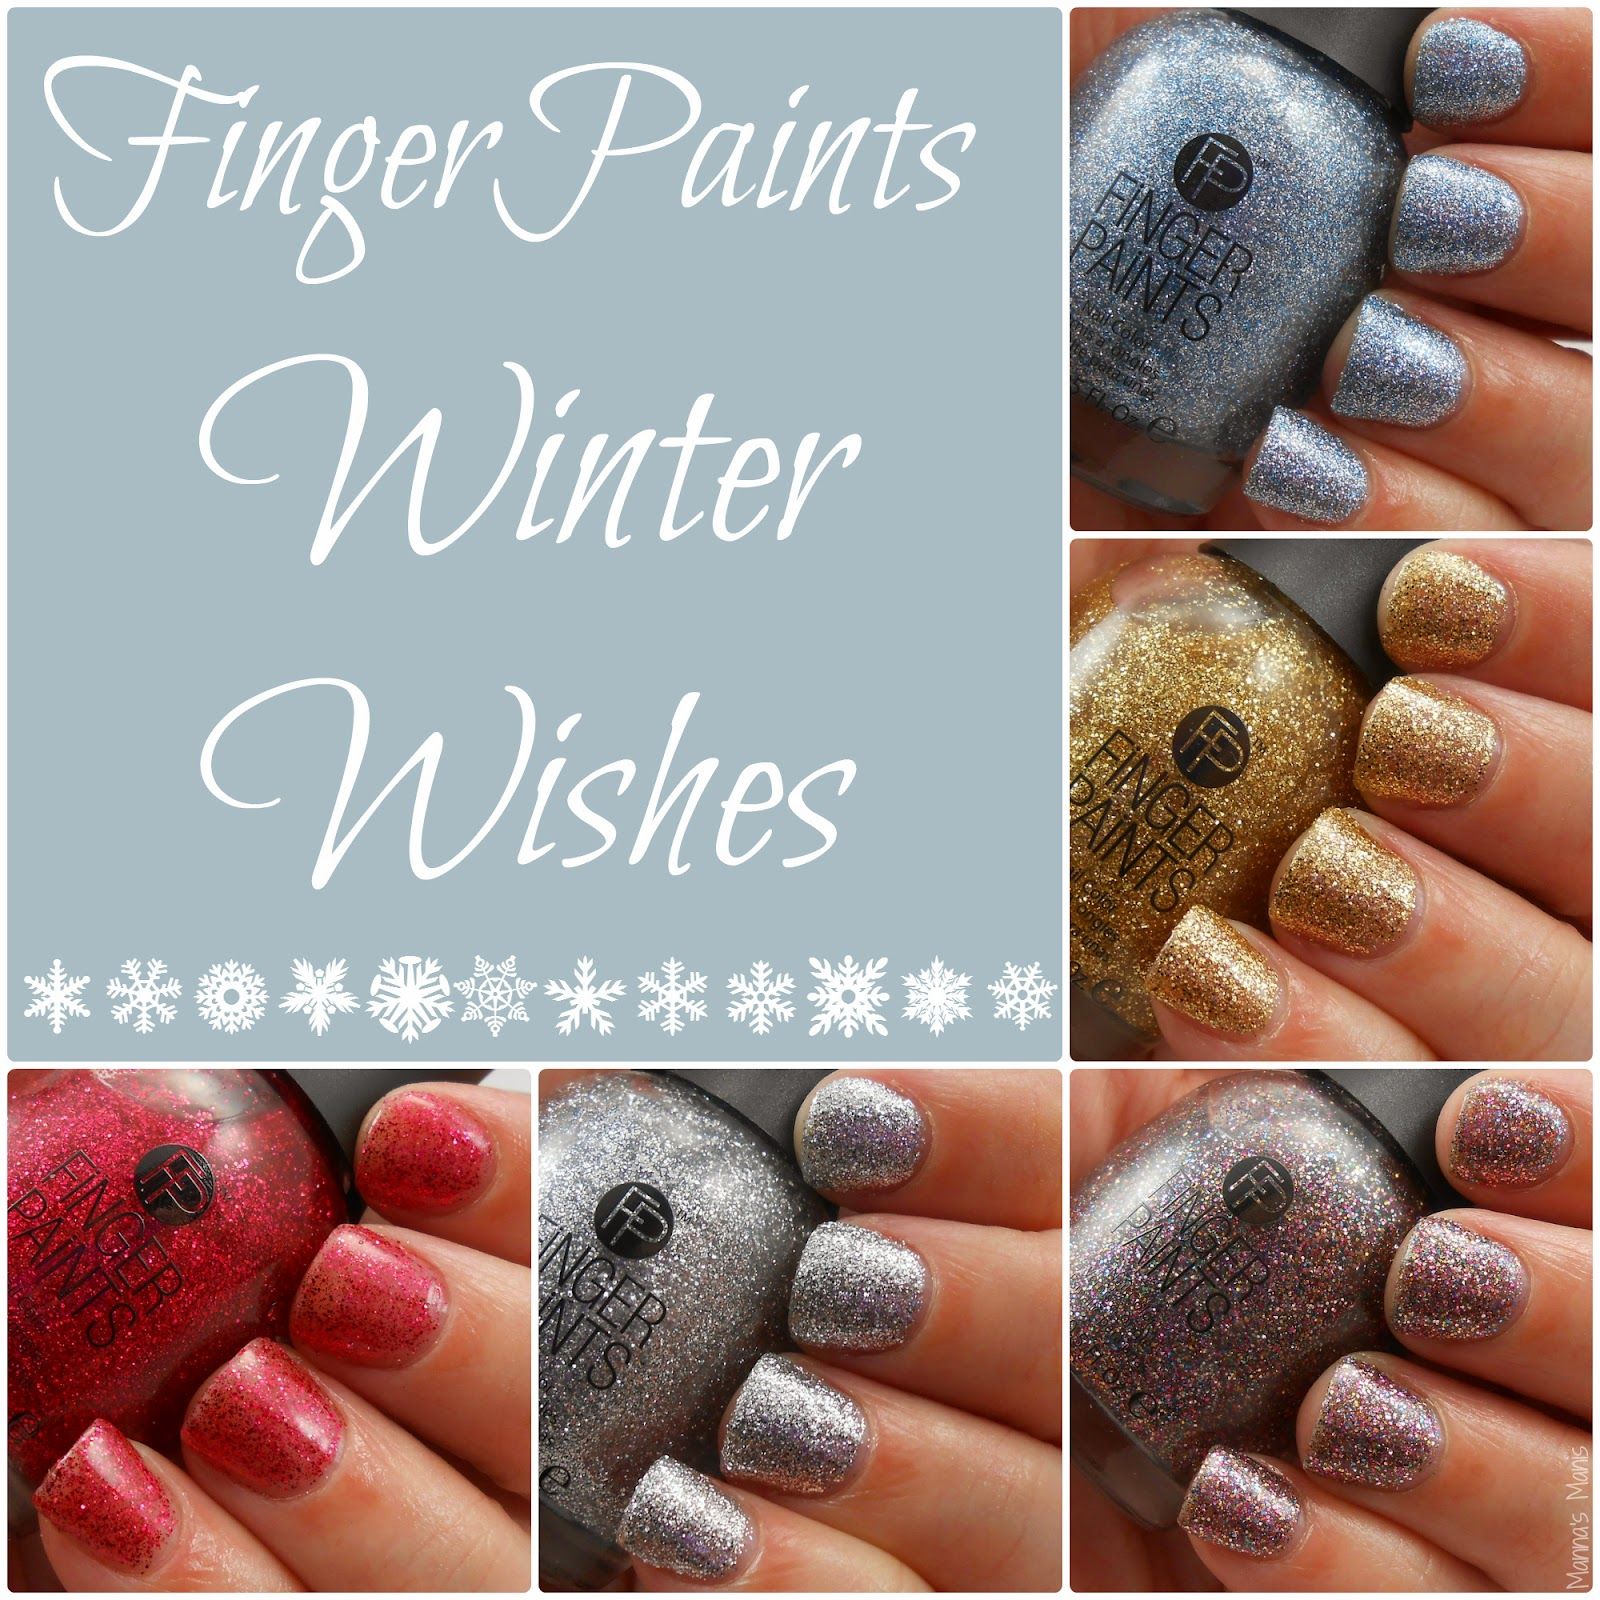 fingerpaints winter wishes collection